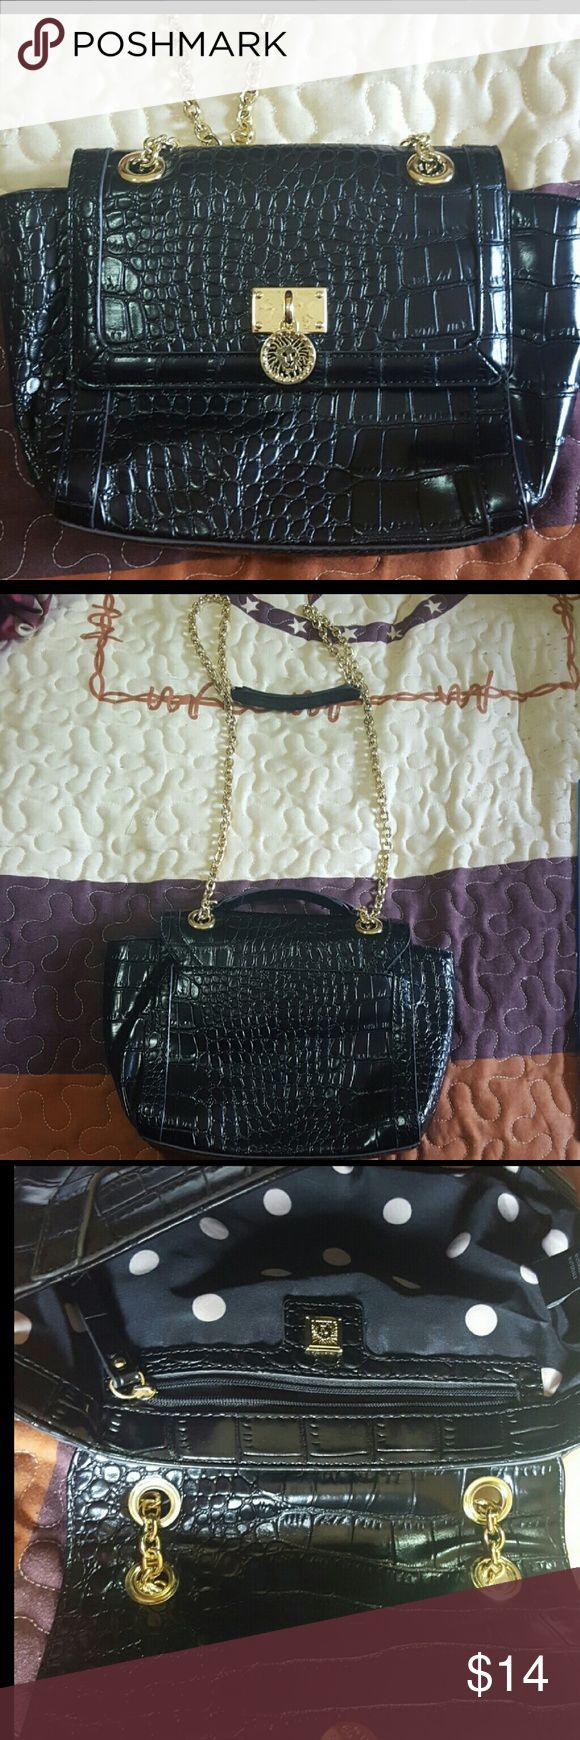 Gold pull chain mini shoulder bag As seen the chain can be pulled to make it longer or shorter approx 10x7.5 inside polka dot alligator skin texture. Anne Klein Bags Mini Bags